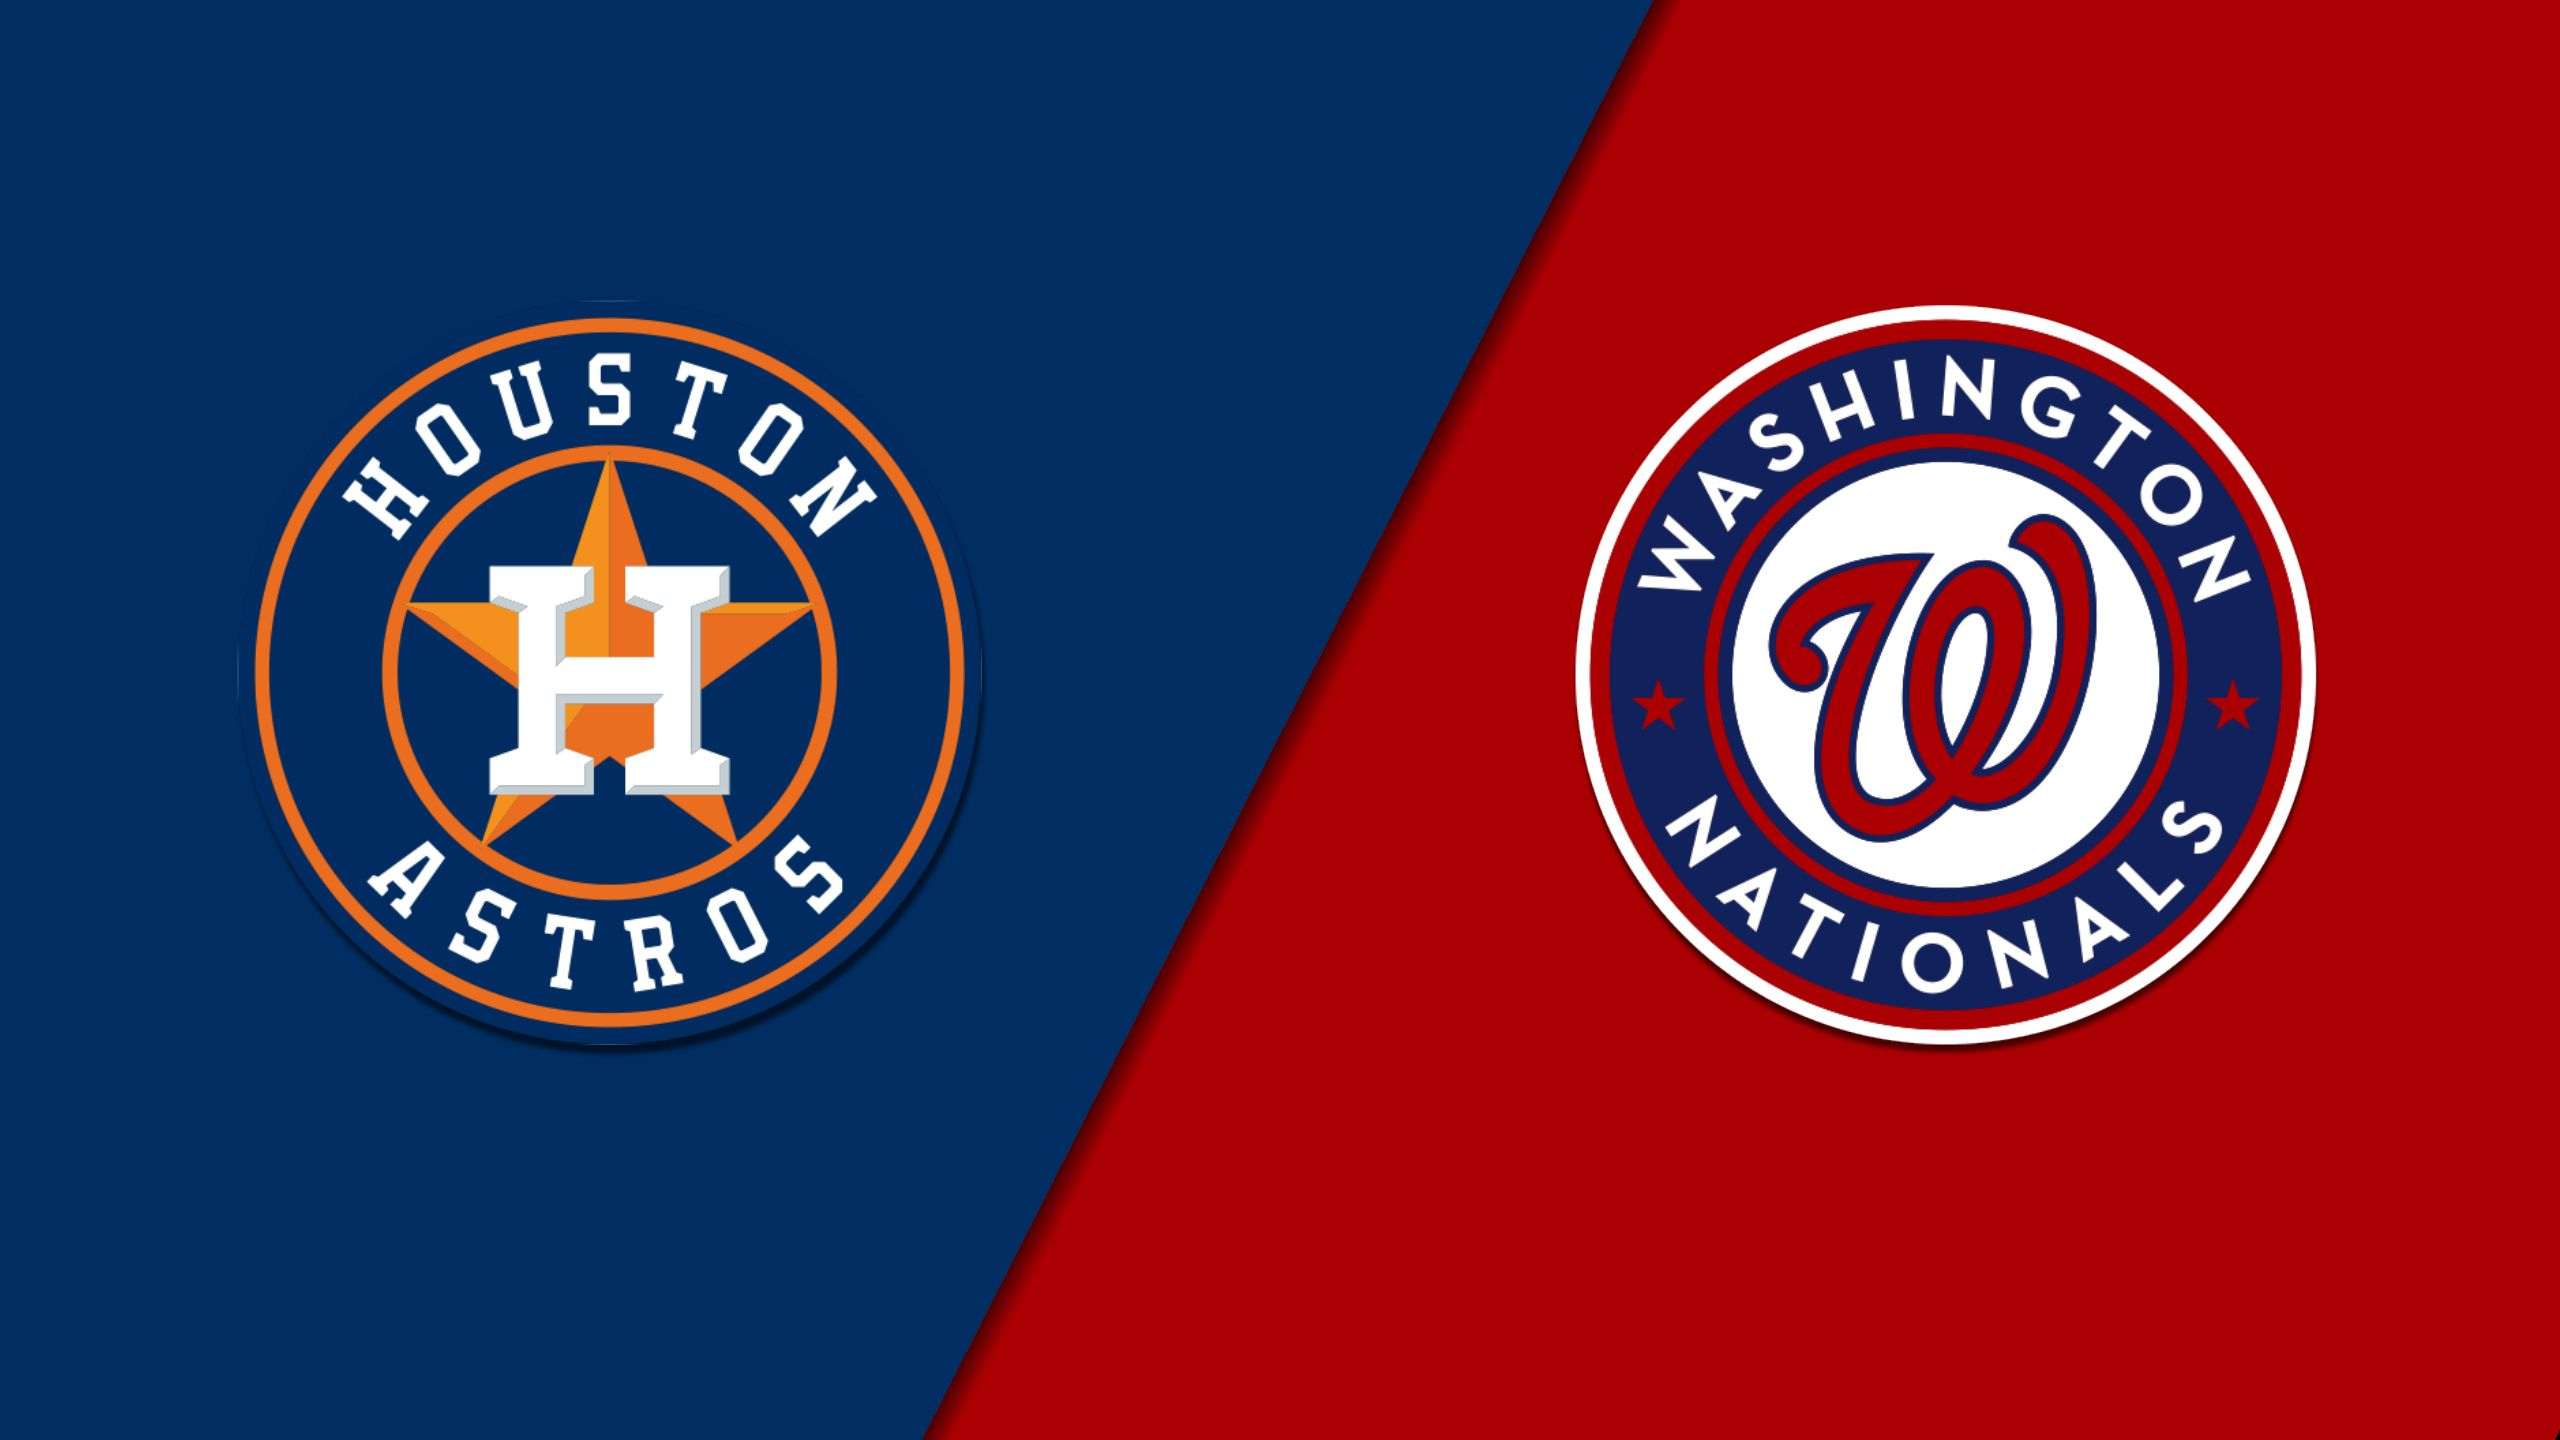 In Spanish - Houston Astros vs. Washington Nationals